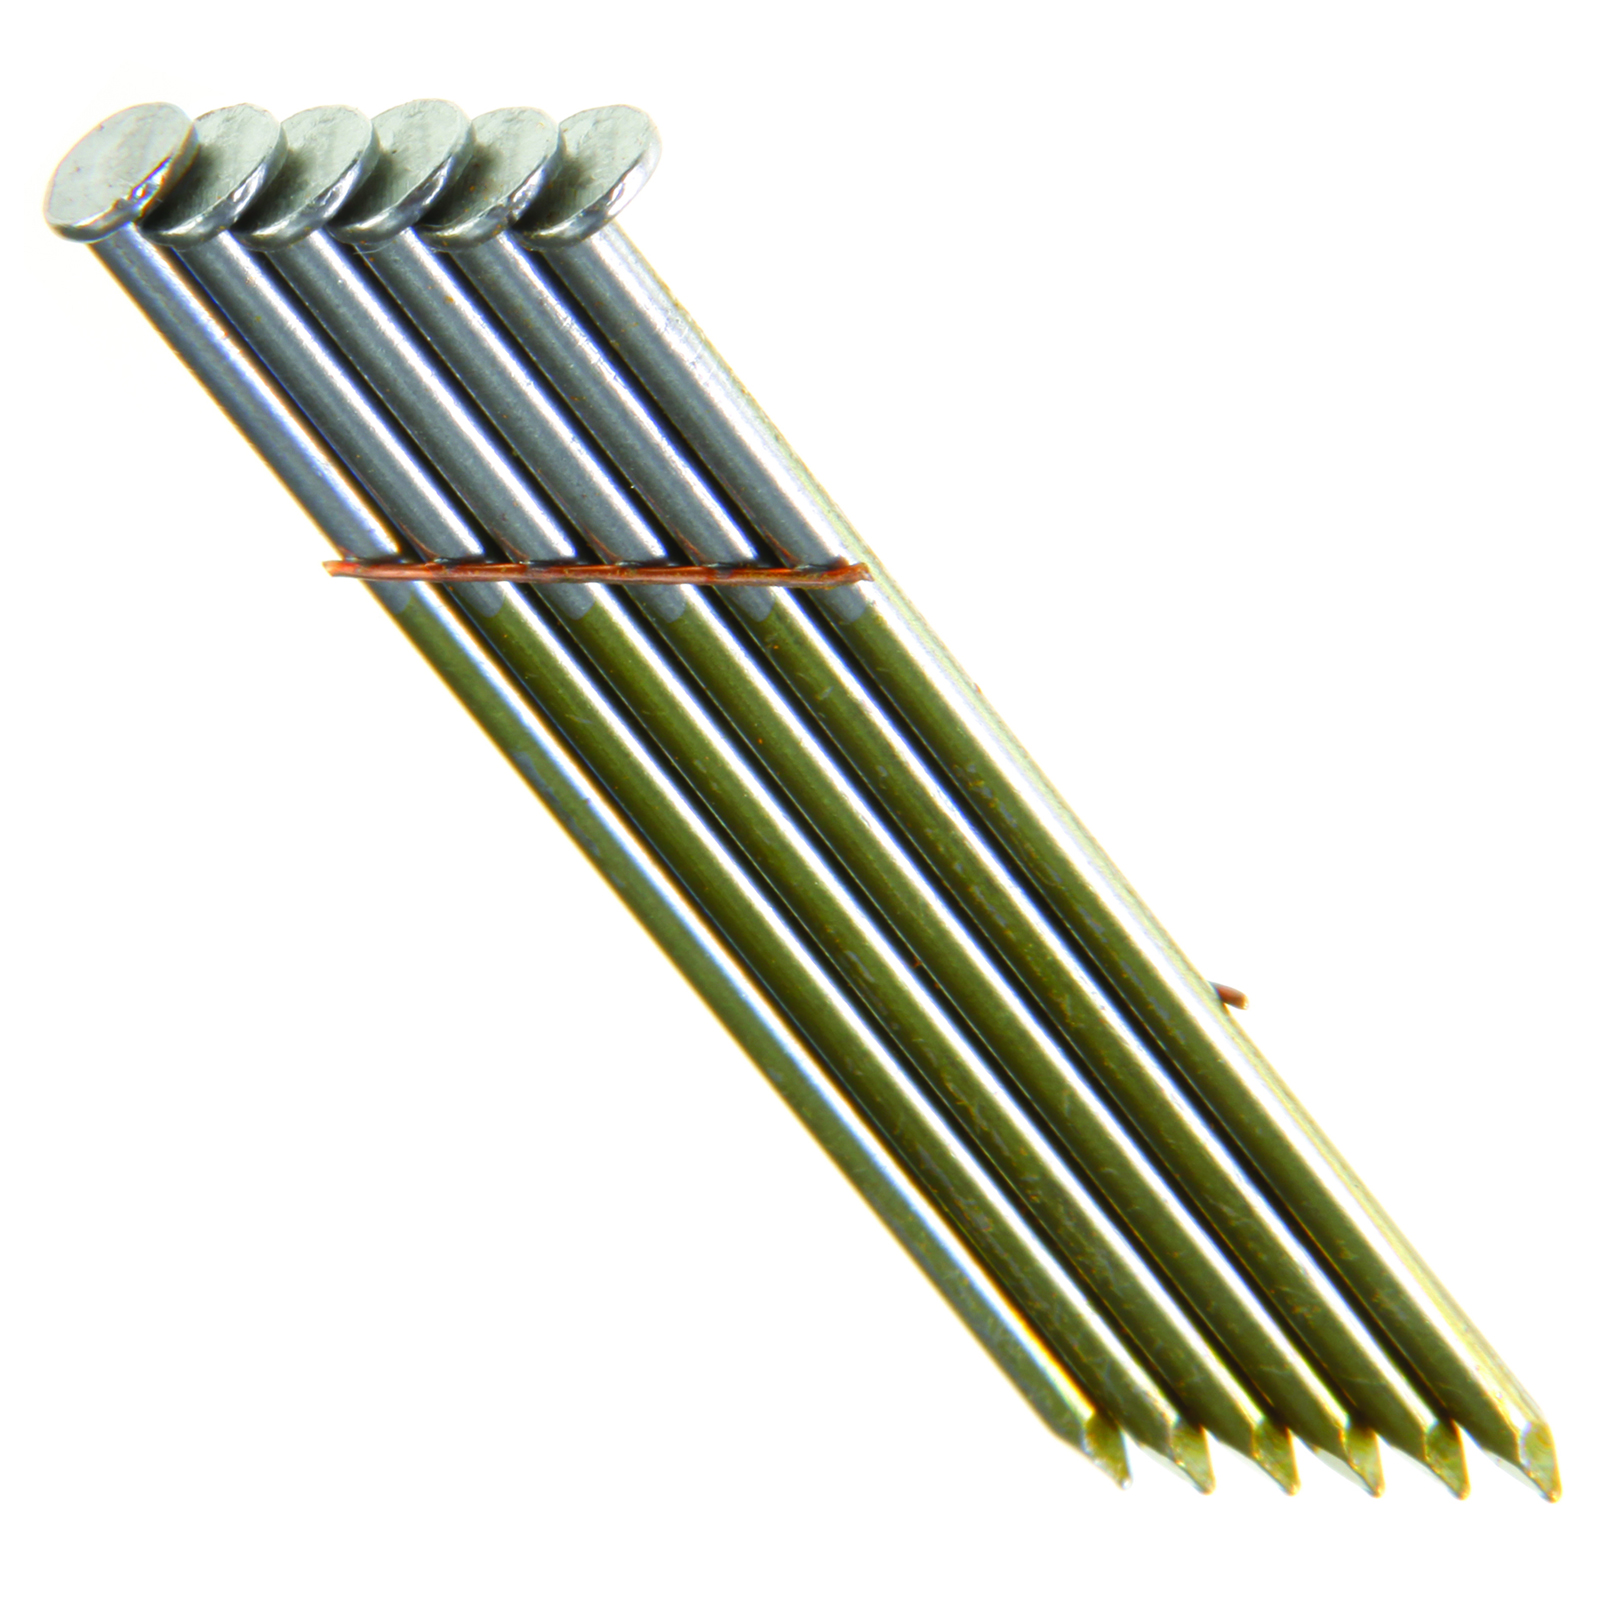 28 12D RH WIRE SMTH COATED STICK NAIL